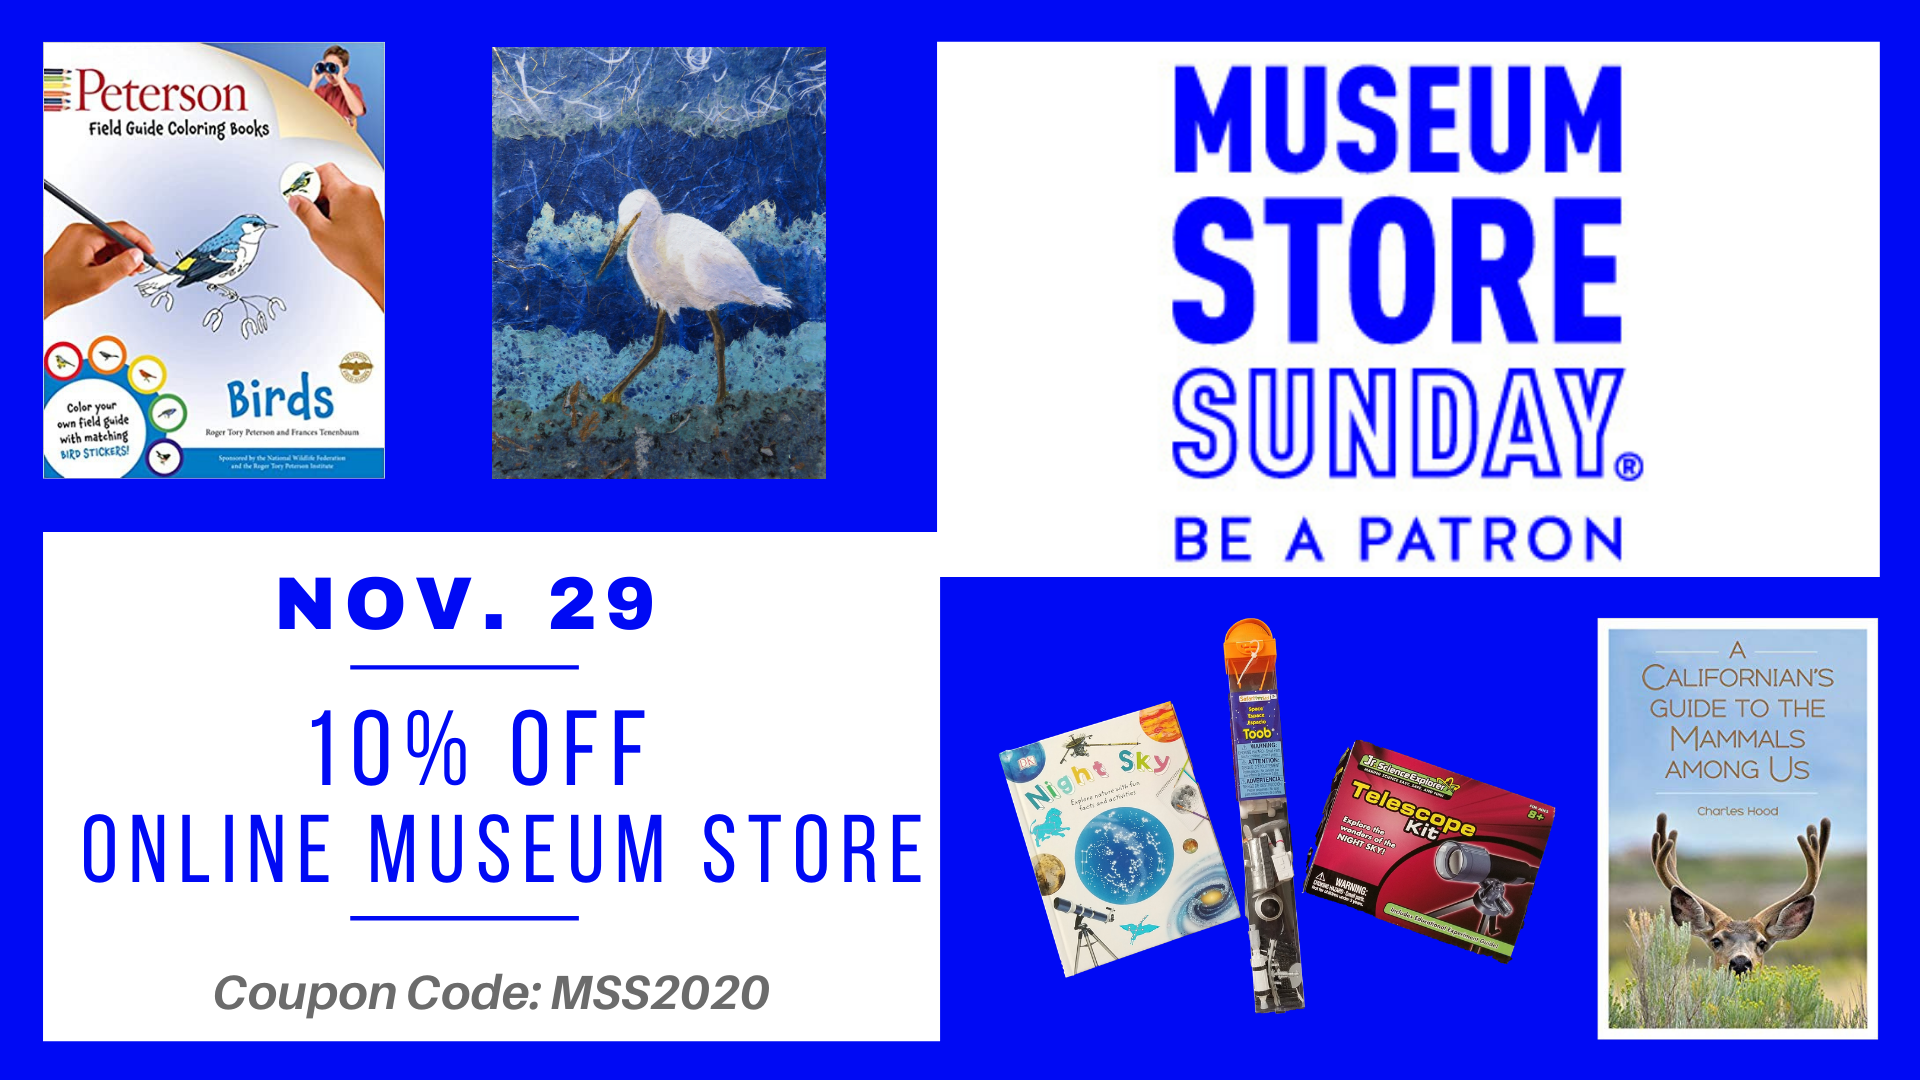 Banner advertising Museum Store Sunday